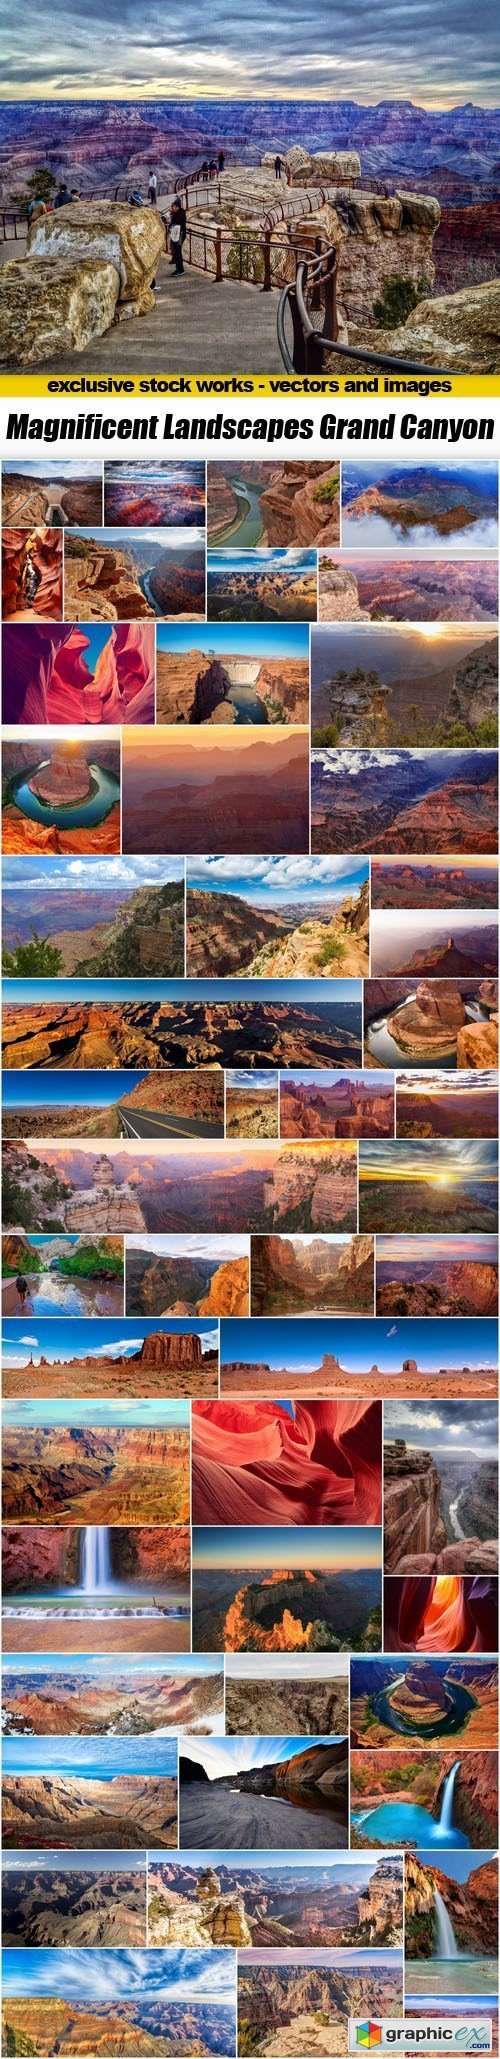 Magnificent Landscapes Grand Canyon - 51xUHQ JPEG